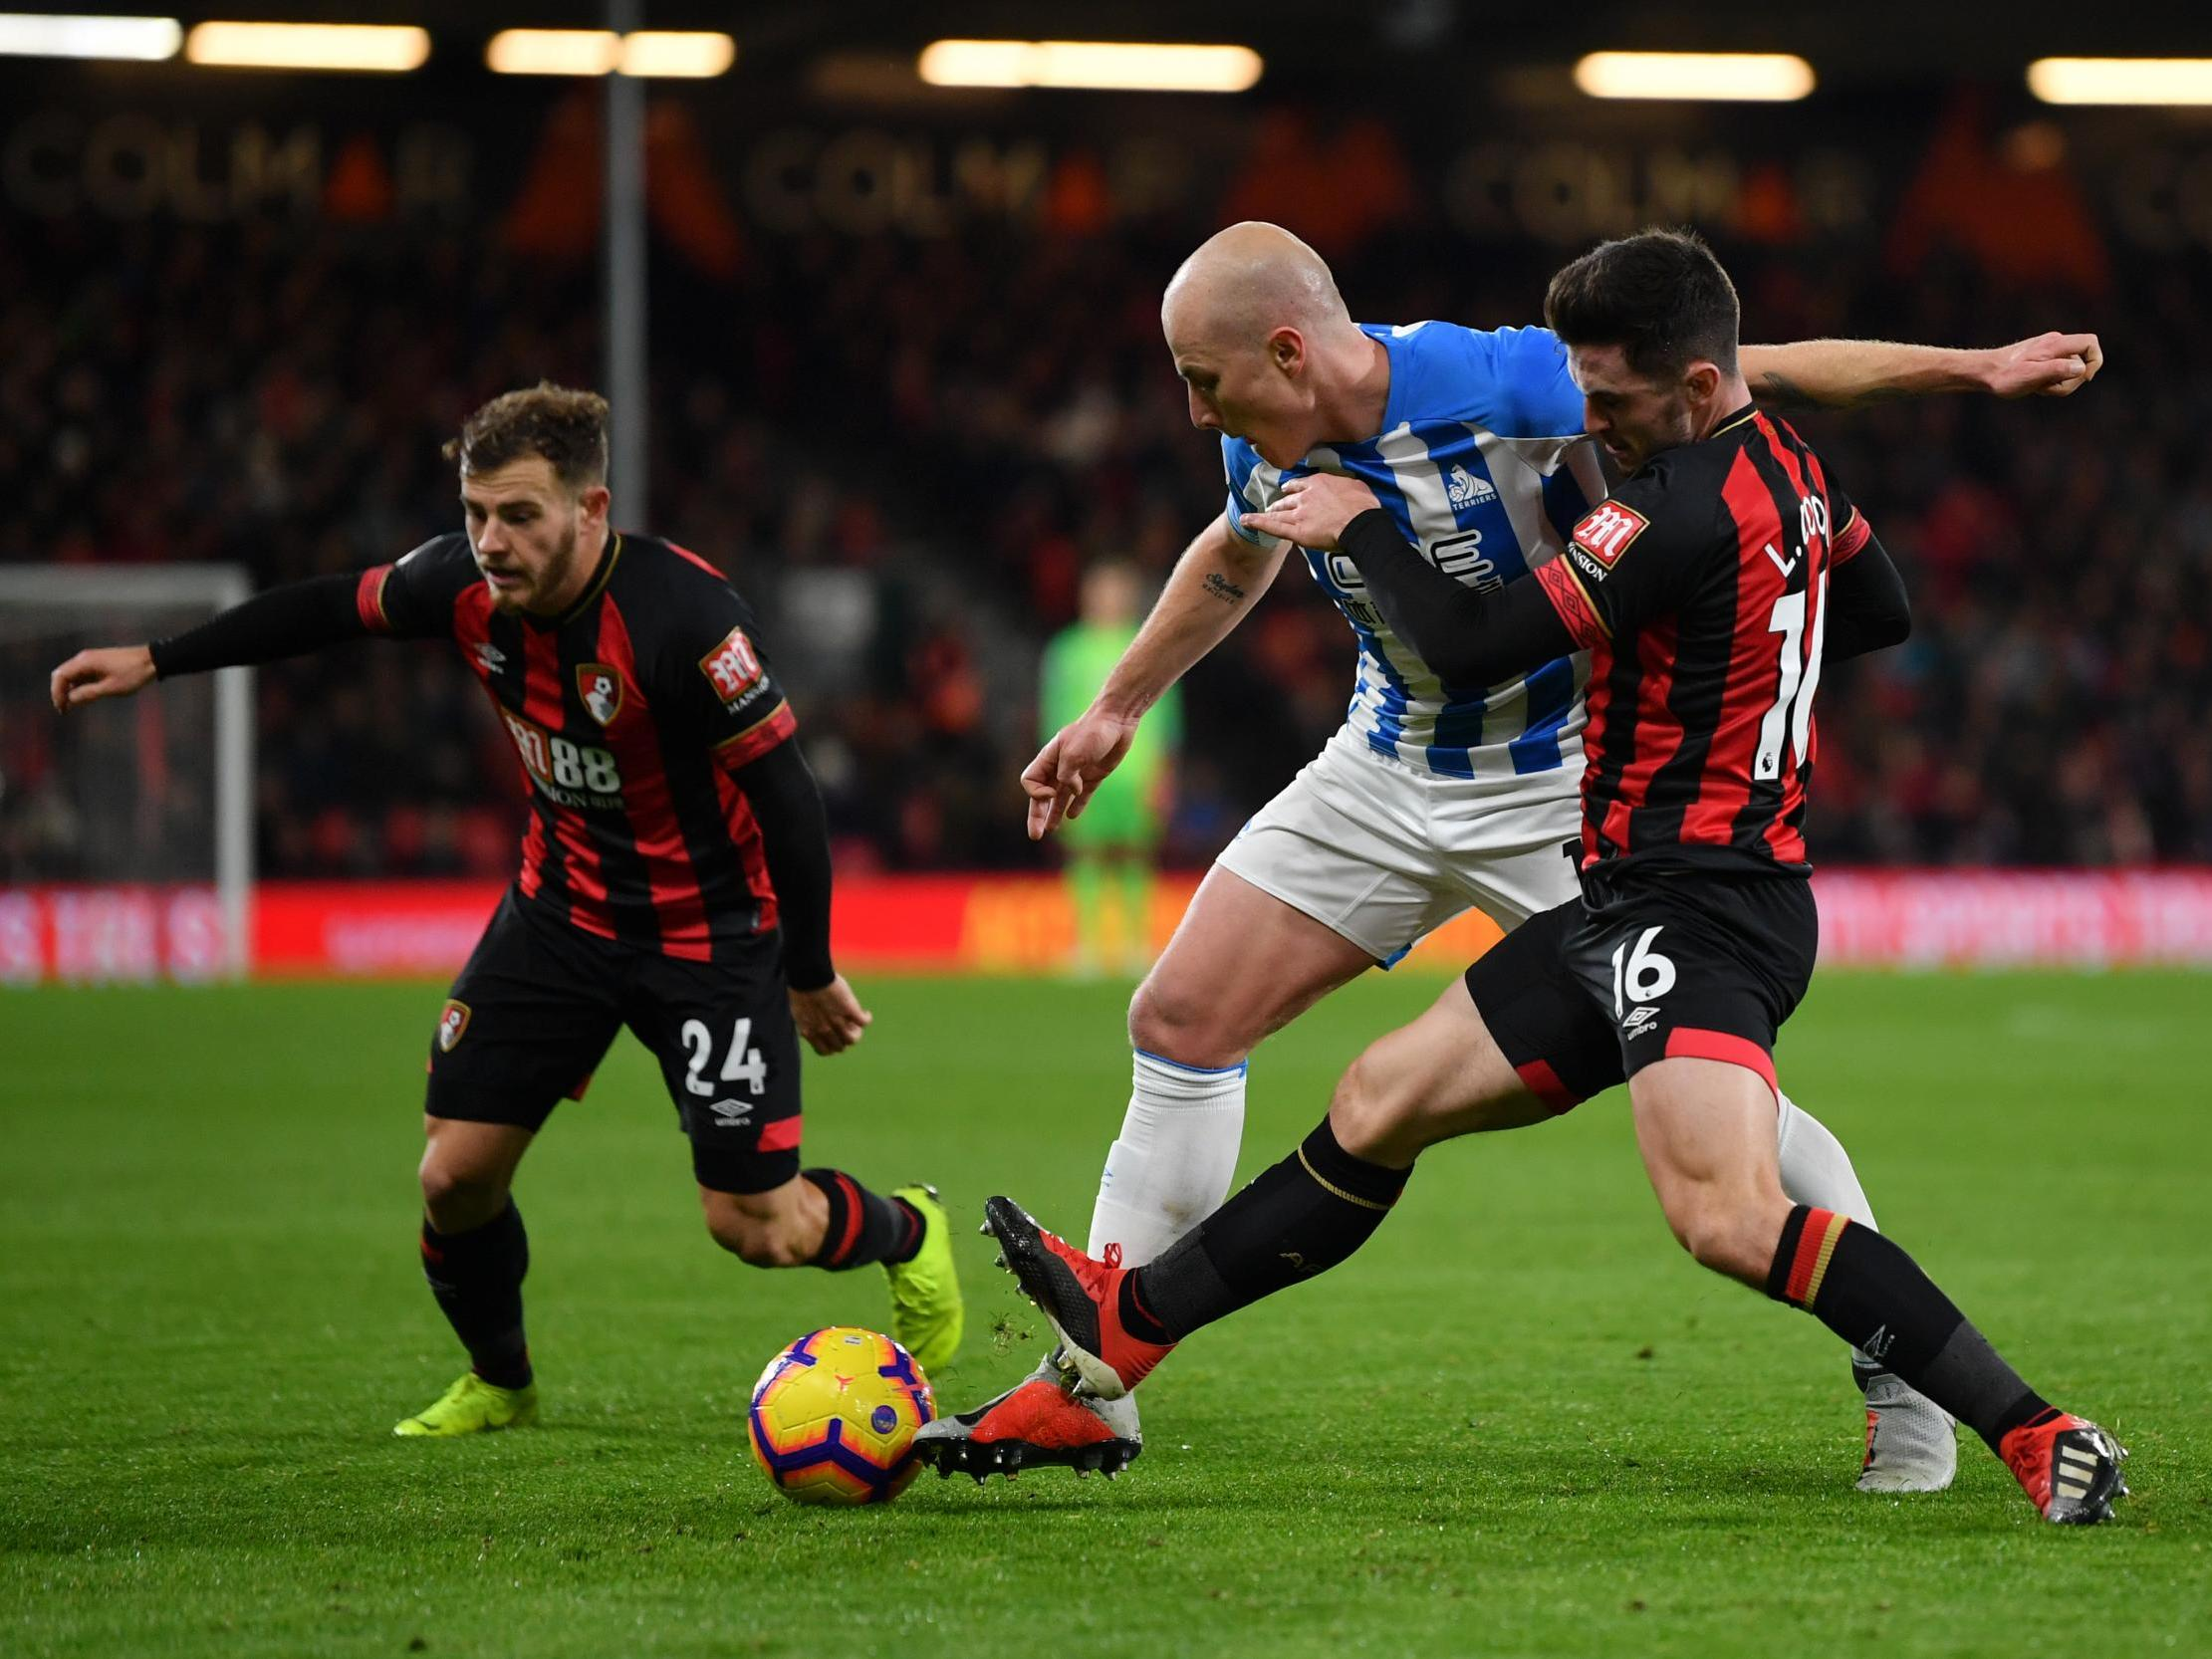 Bournemouth midfielder Lewis Cook out for six to nine months after rupturing ACL against Huddersfield Town